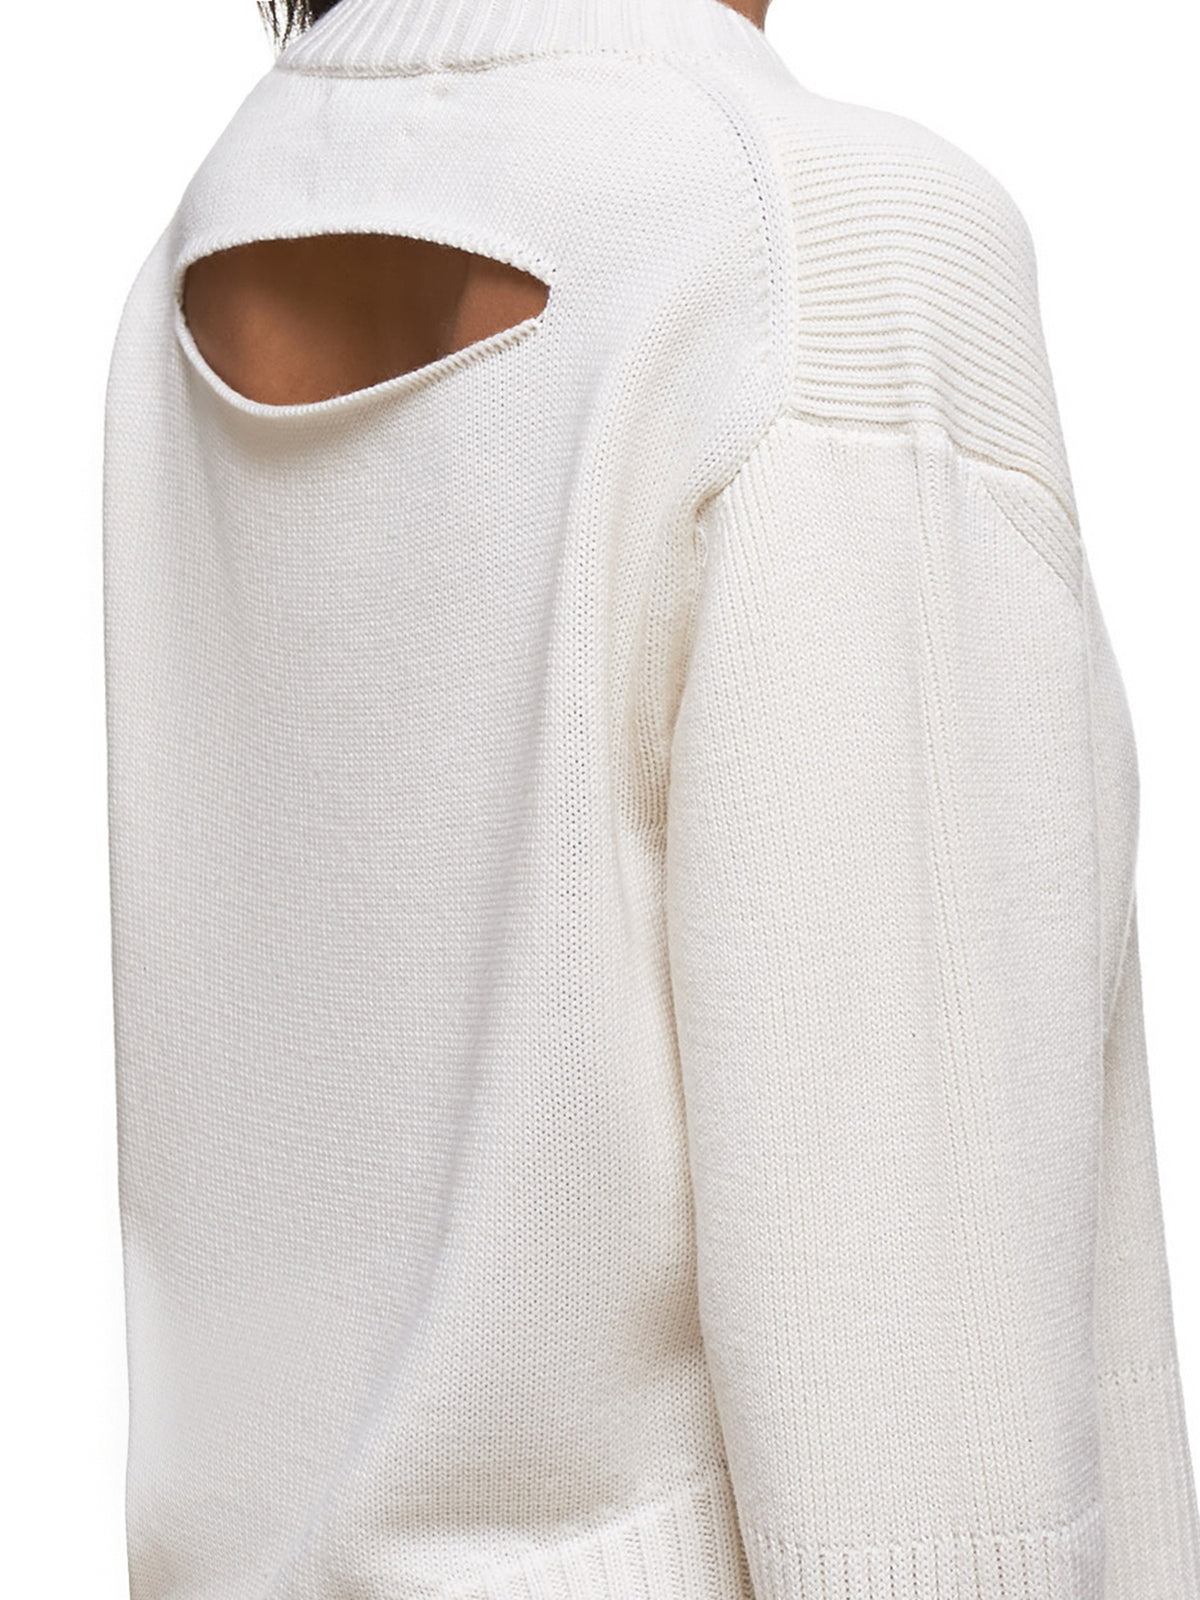 Bottega Veneta Sweater - Hlorenzo Detail 2